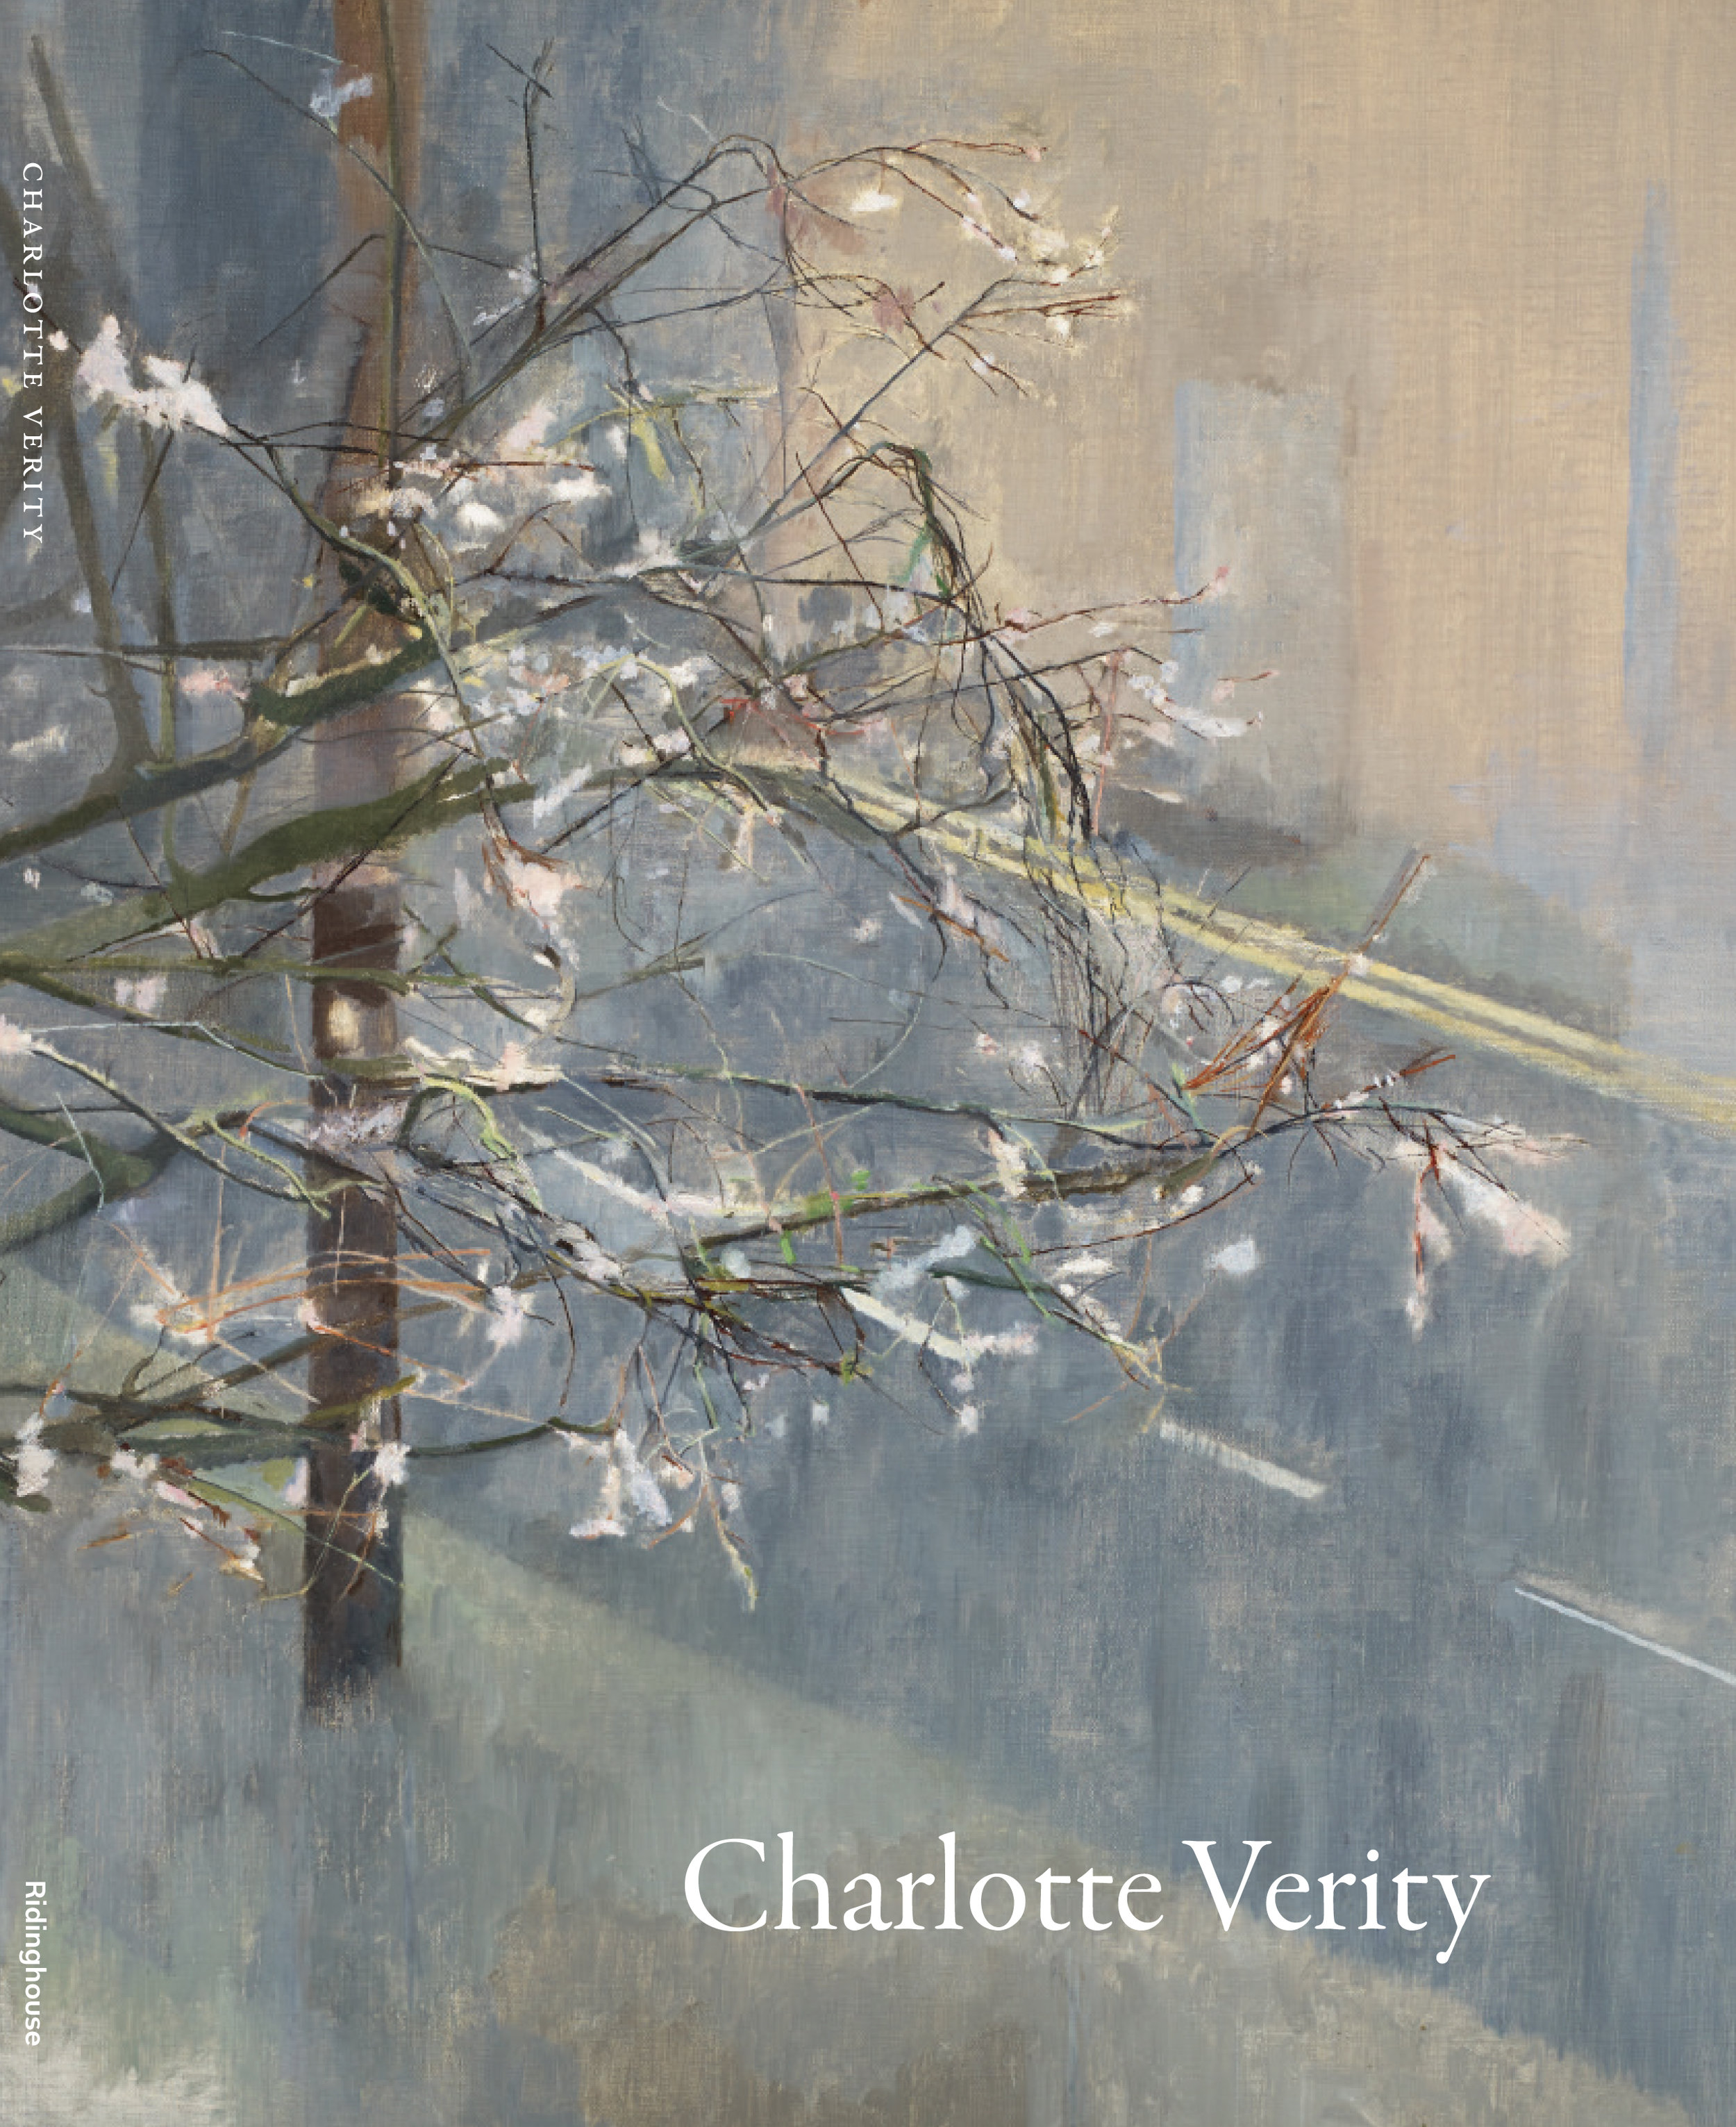 Charlotte Verity - Ridinghouse,2016Essays by Edmund De Waal and Paul Hills, and the artist in conversation with Garry Fabian-MillerISBN: 978-1909932326click above for essay texts